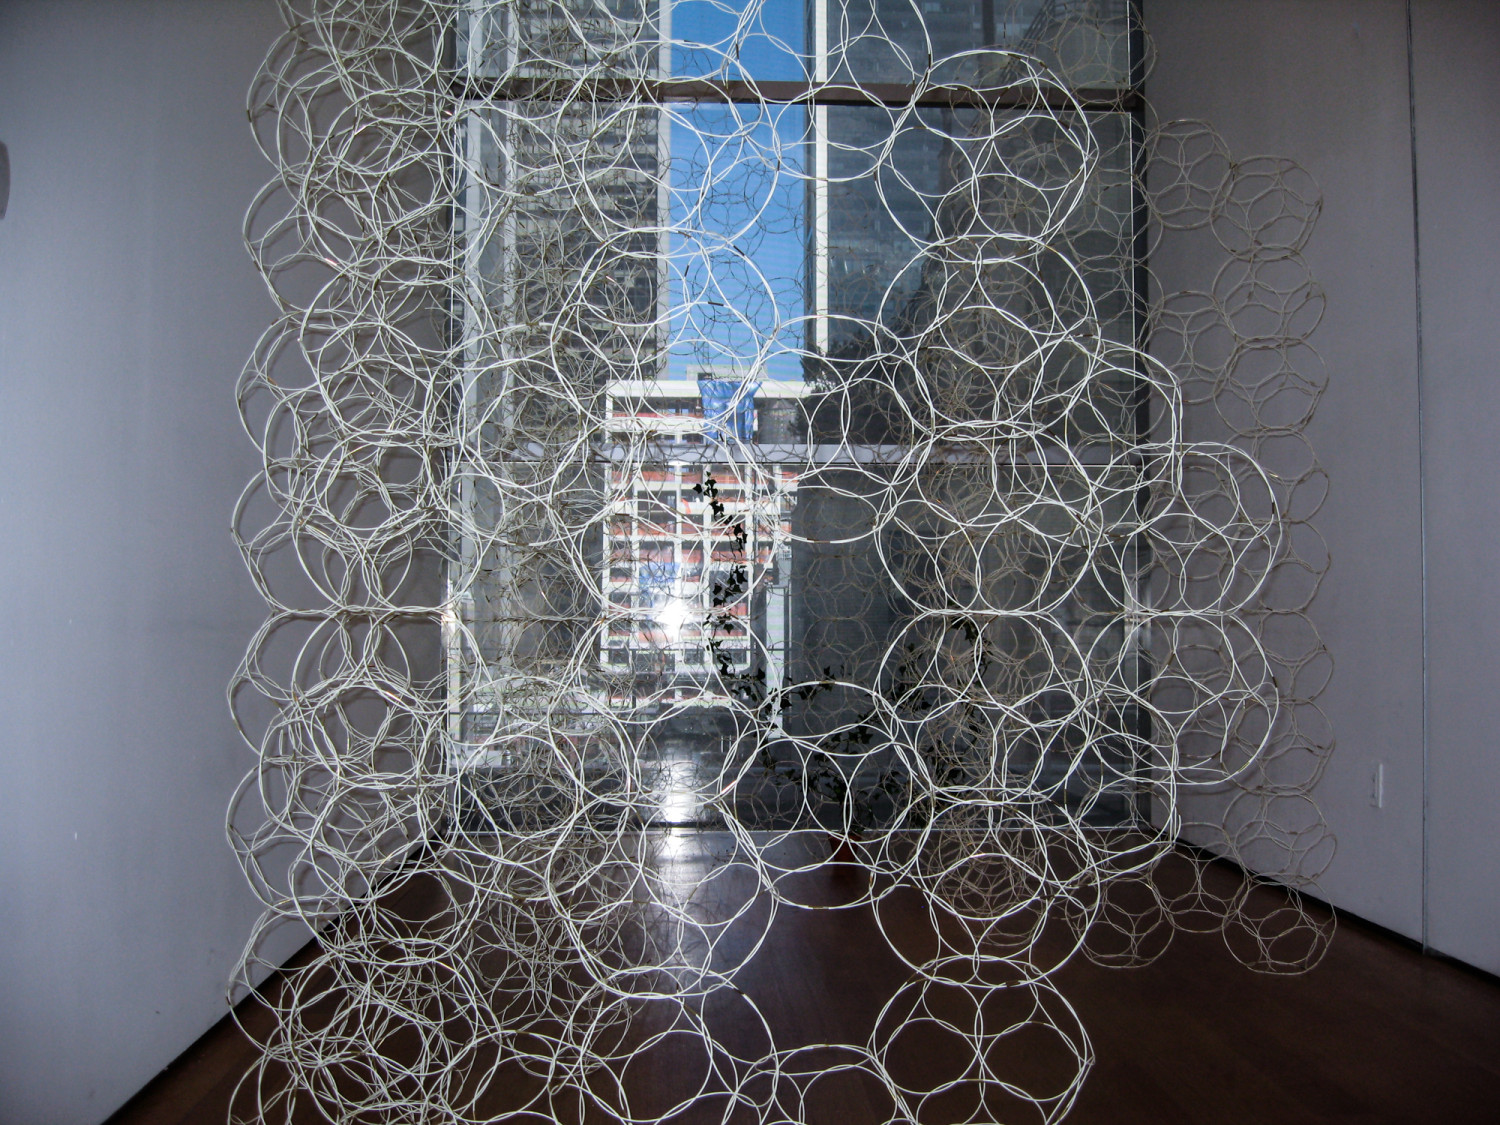 We exhibited BioWall in a curved spatial configuration. A series of free standing, curved walls were placed at the entrance to the gallery inviting people to walk between the latticework.